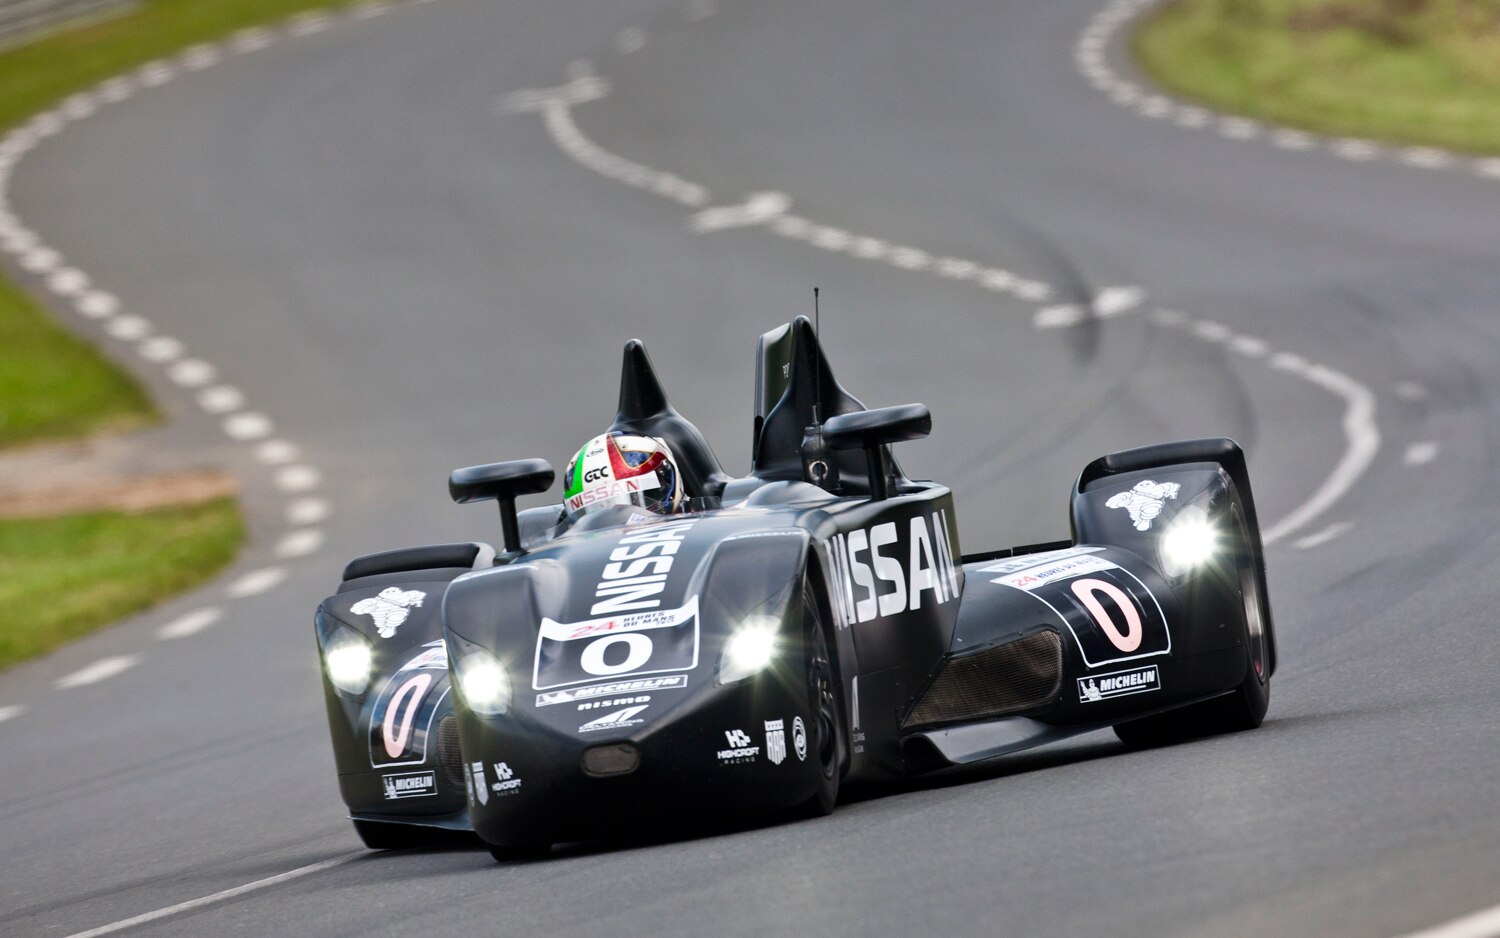 Nissan DeltaWing Racer Front View Motion Le Mans 20121